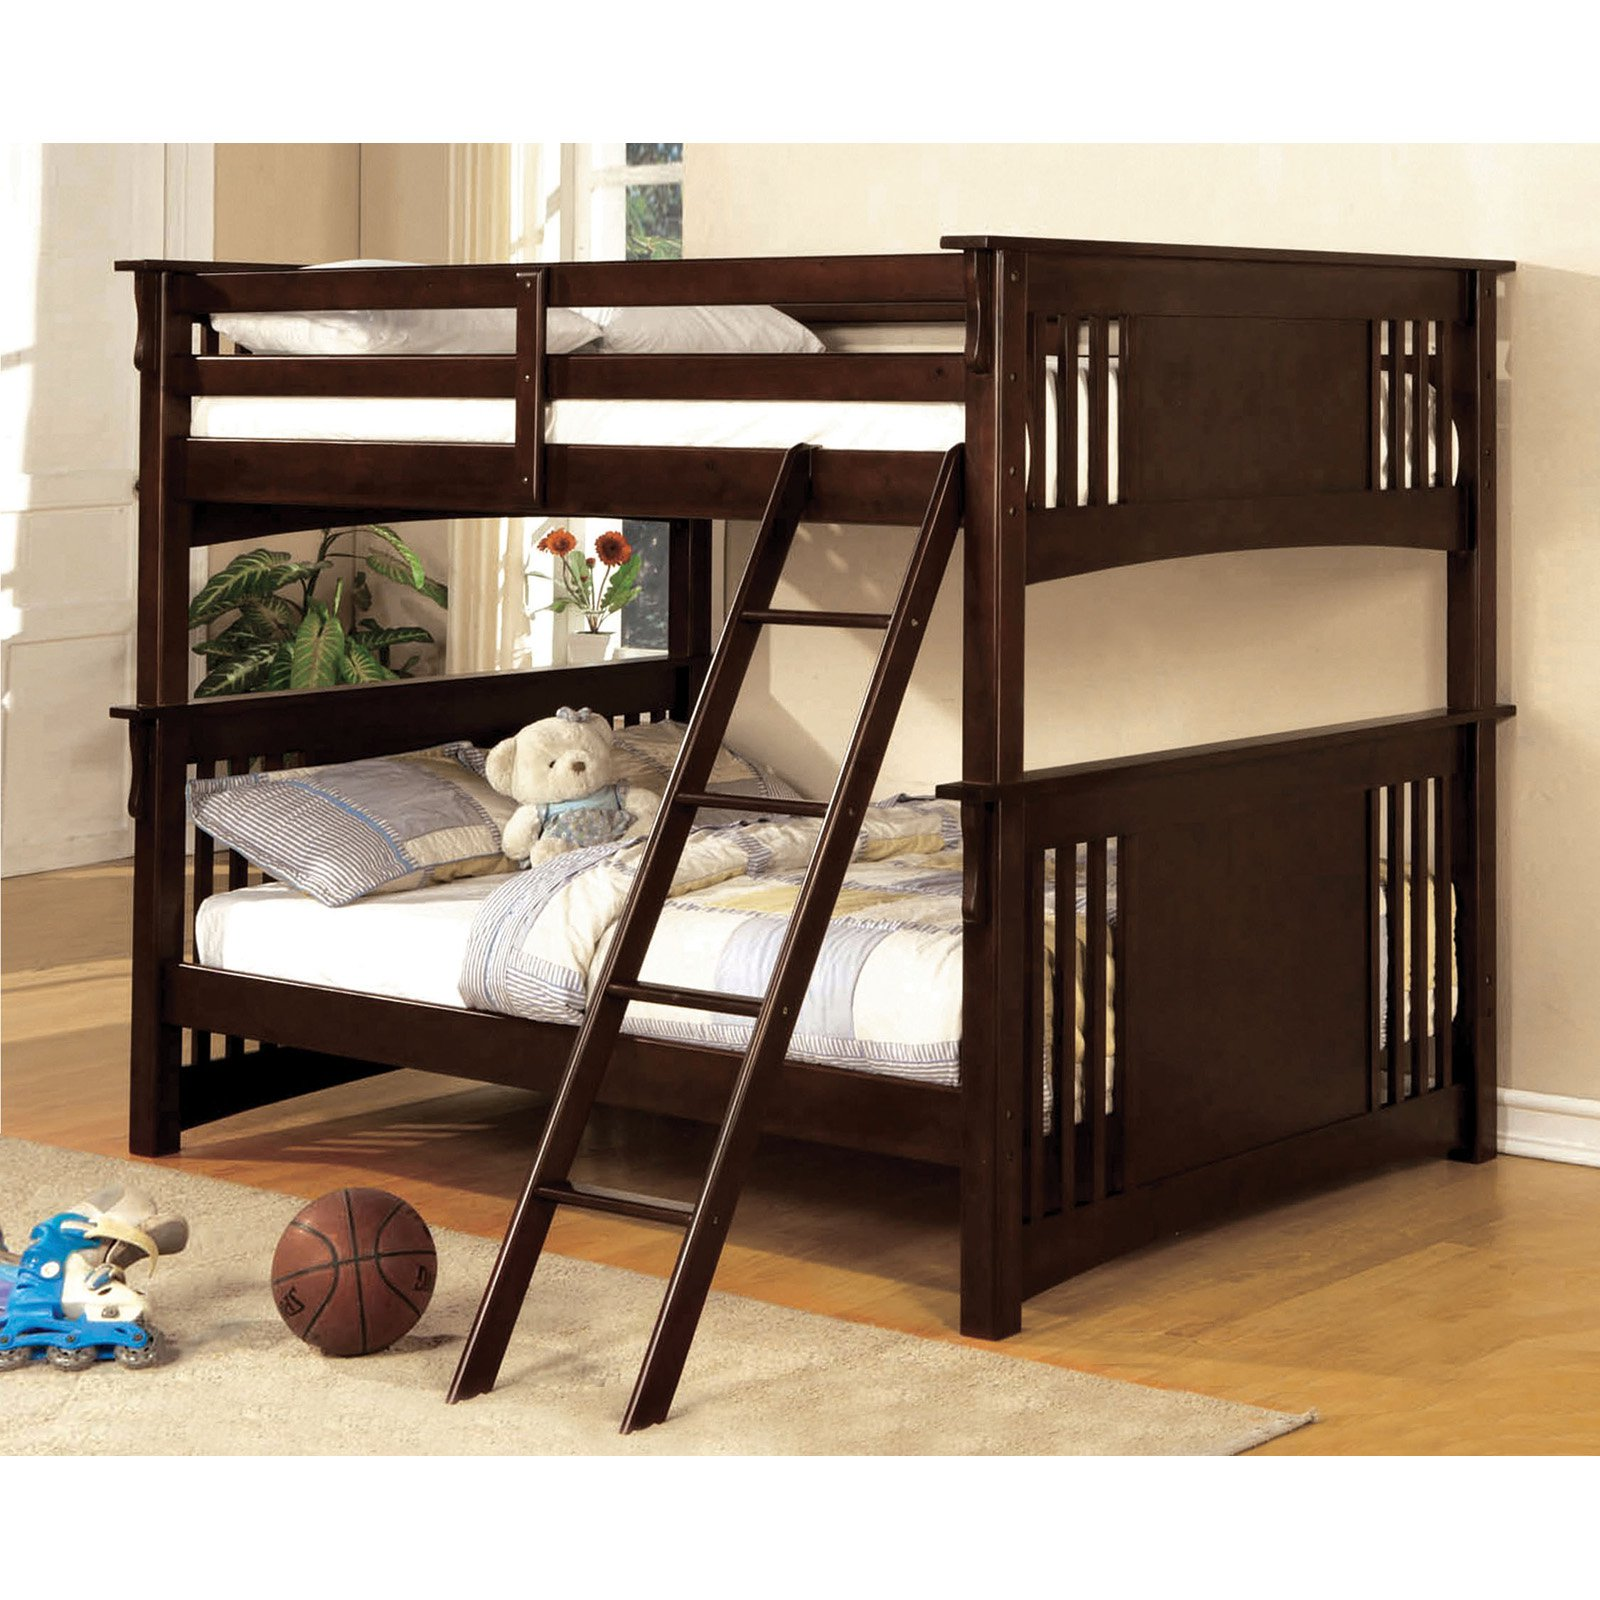 of desk warehouse furniture and bunk bed american freight large beds best size frames